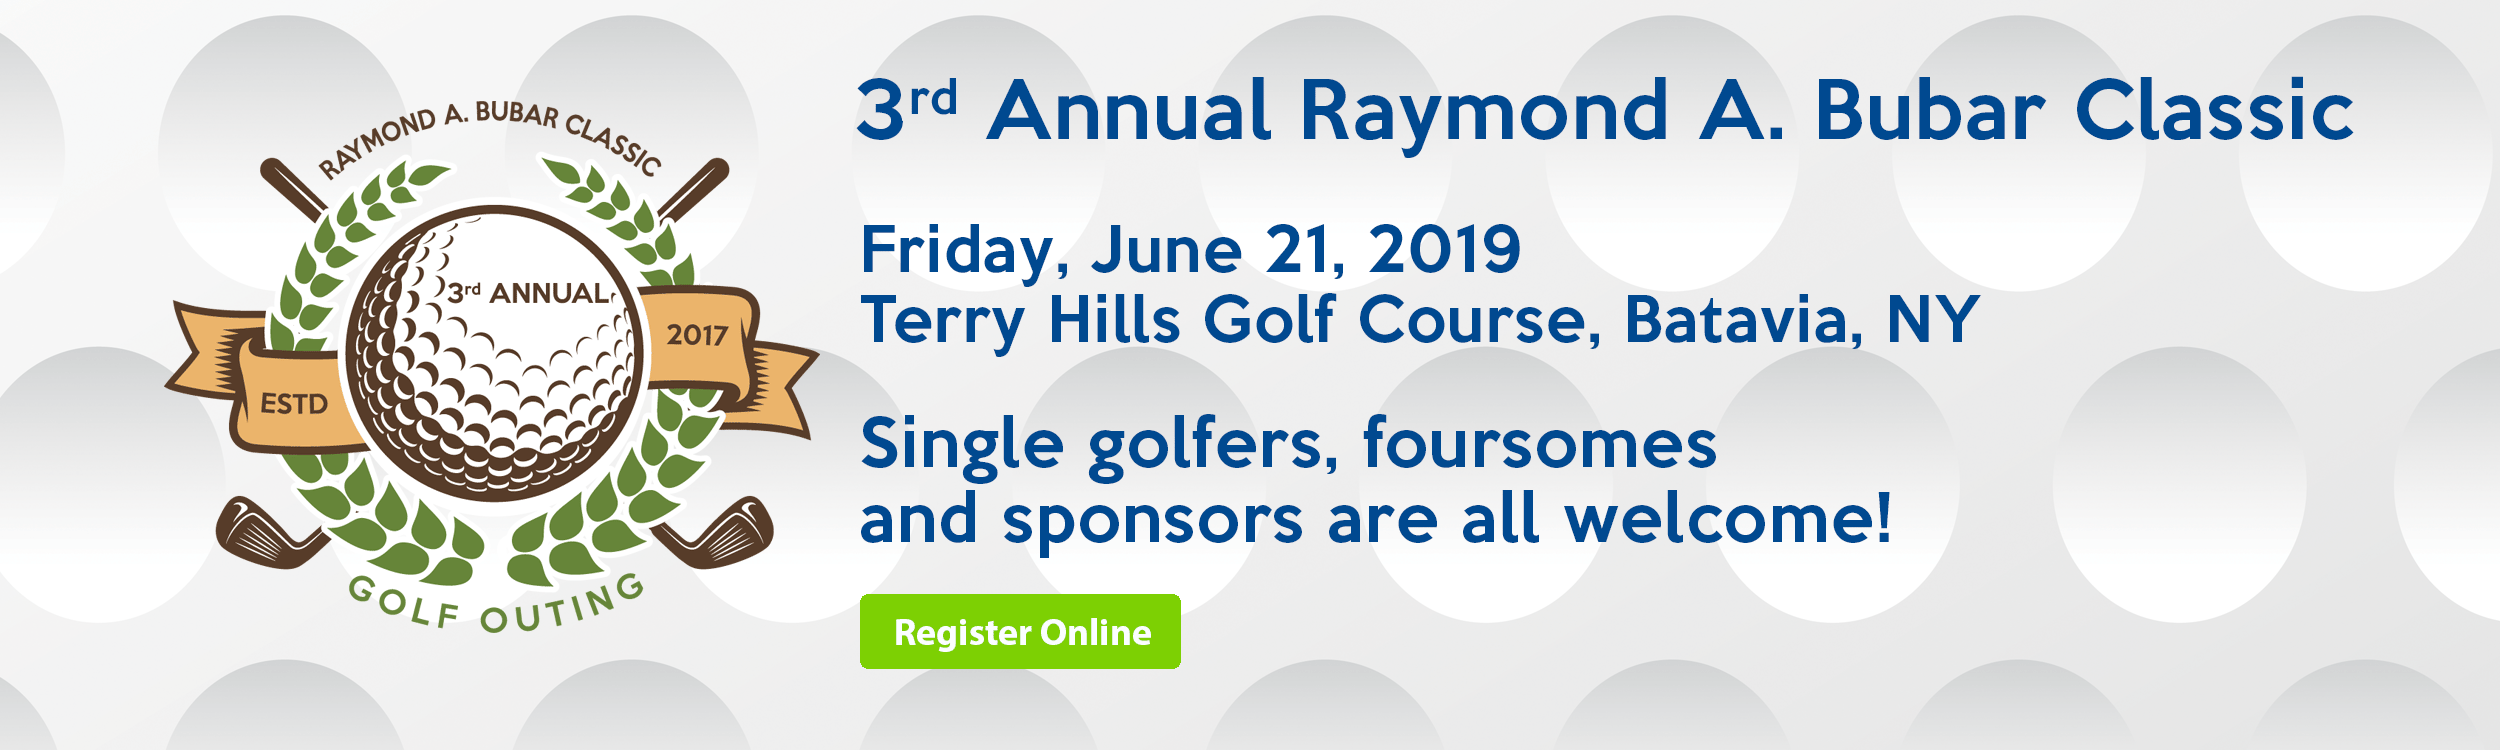 Golf-Outing-Banner_2019